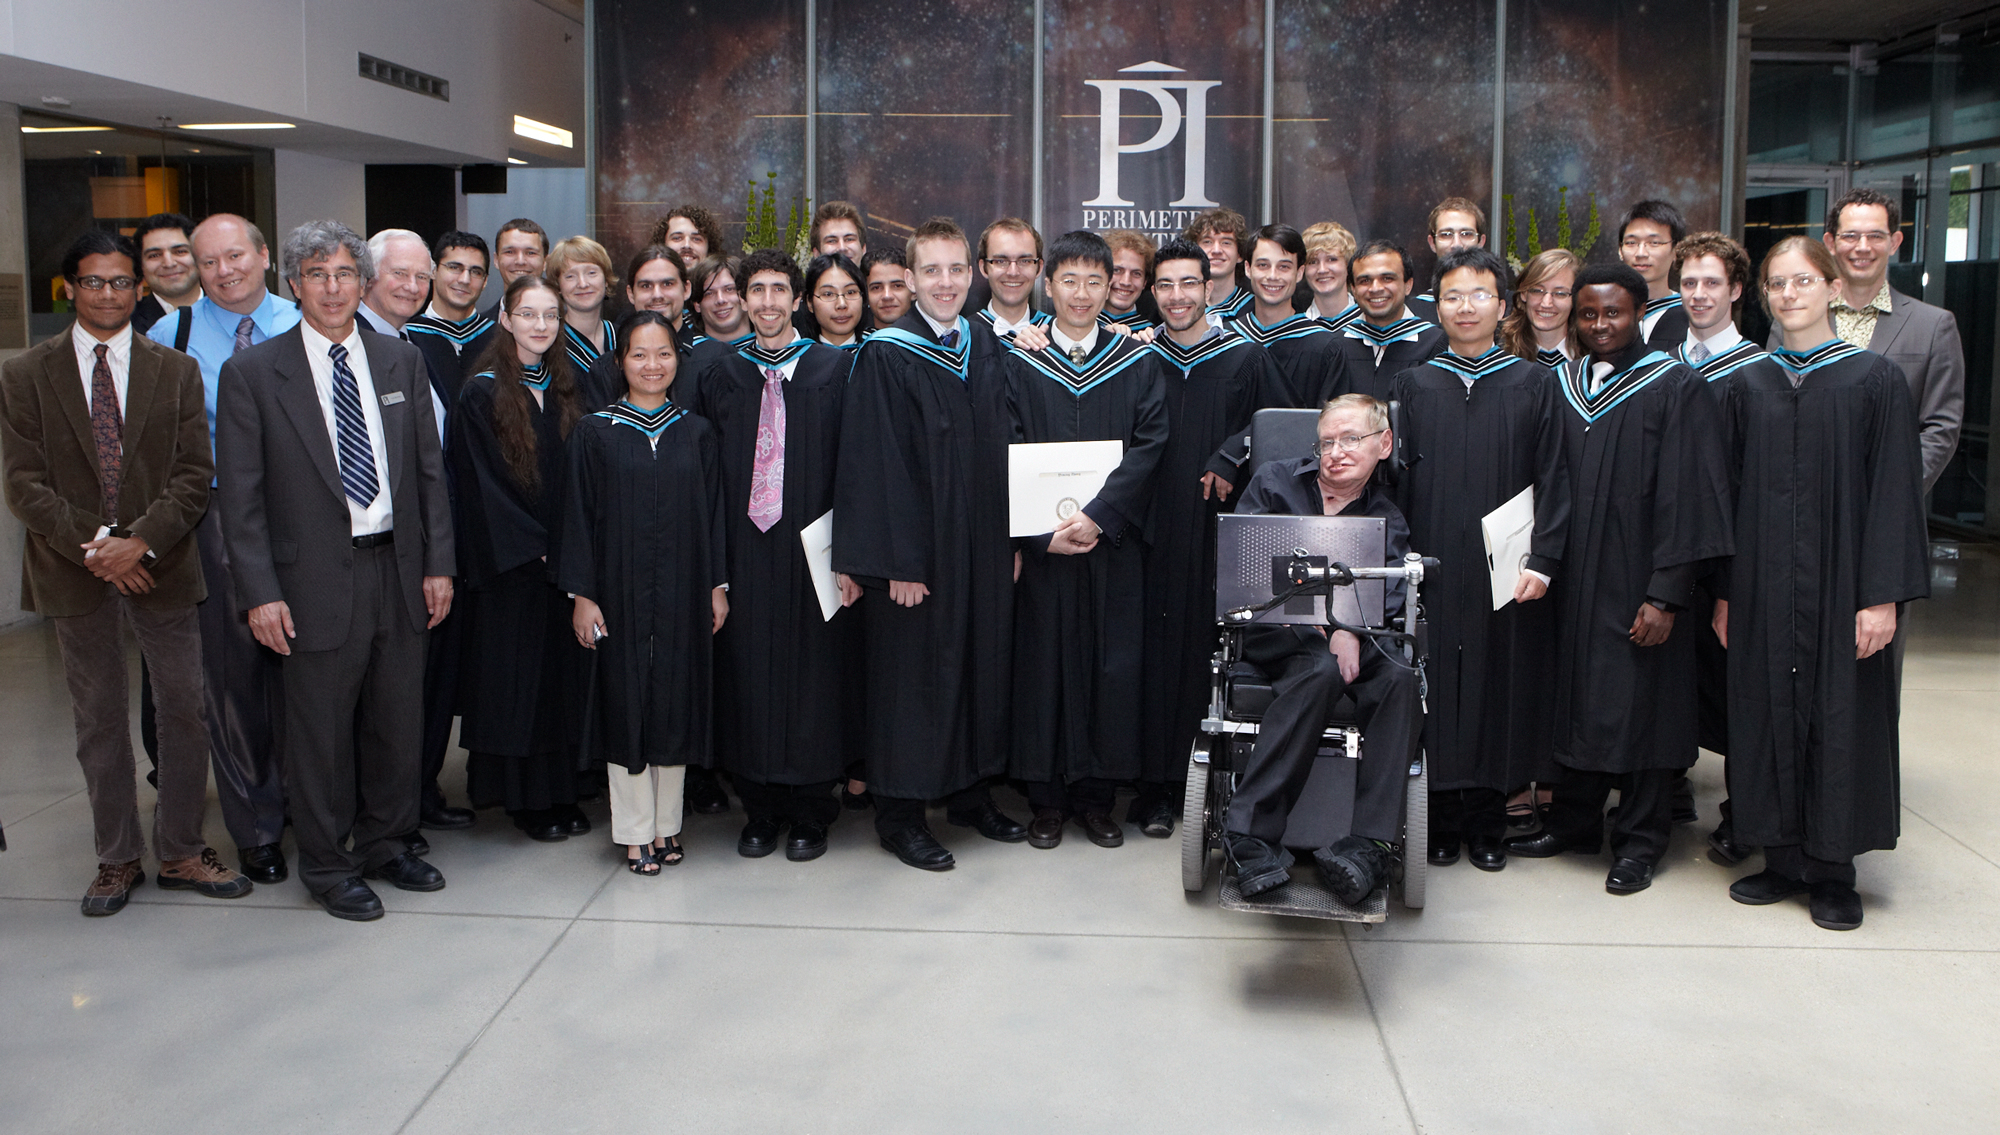 Group shot of physics students at graduation with Stephen Hawking